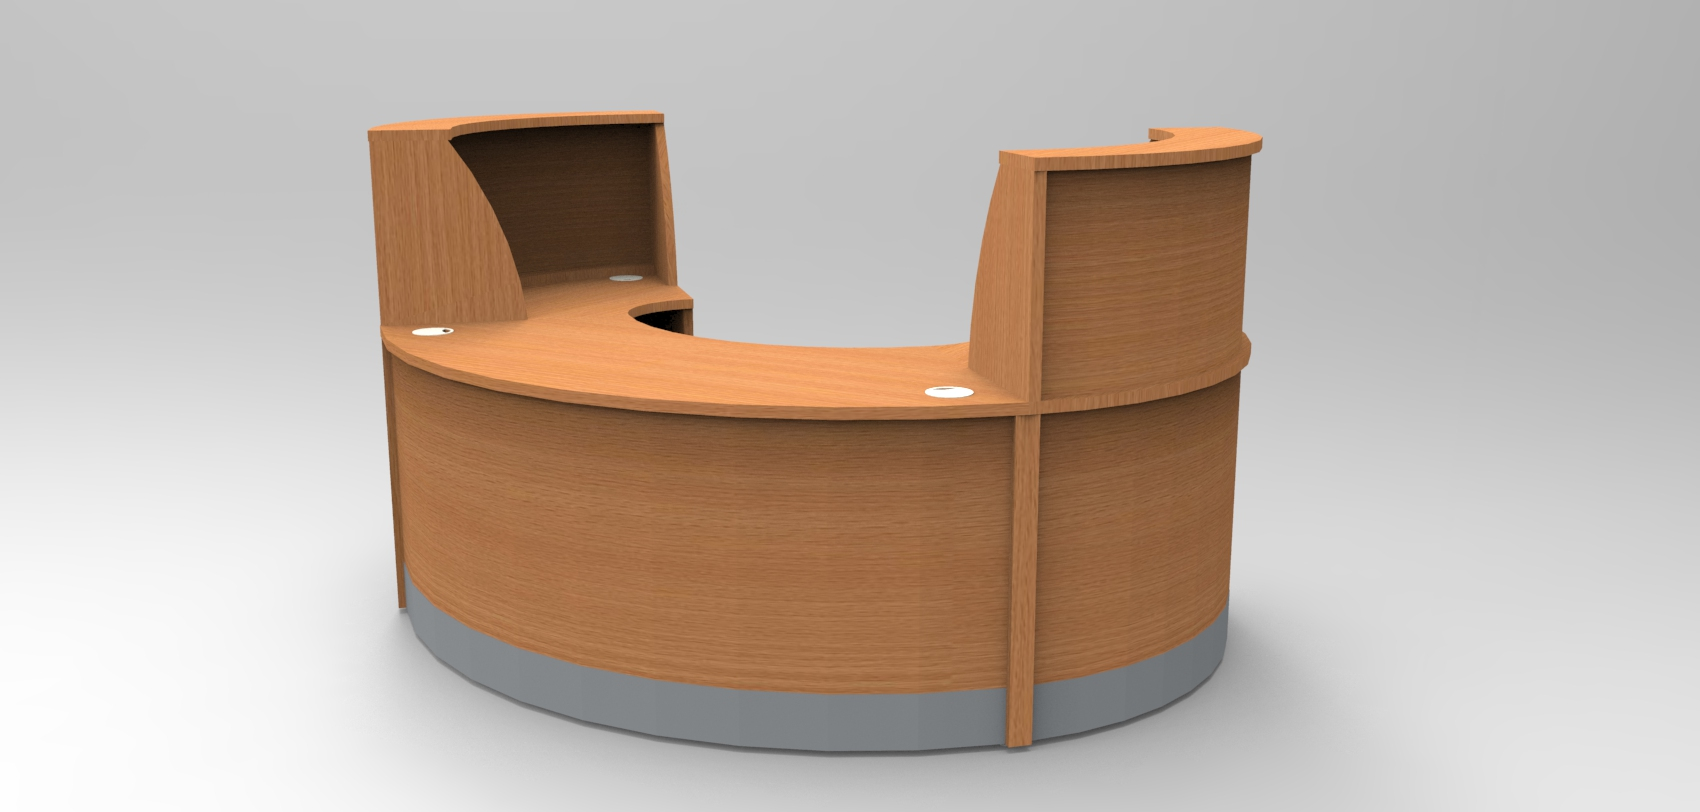 Image 29F/SP - Flex Small Polo reception desk Beech  (2166mm wide x 1483mm deep)